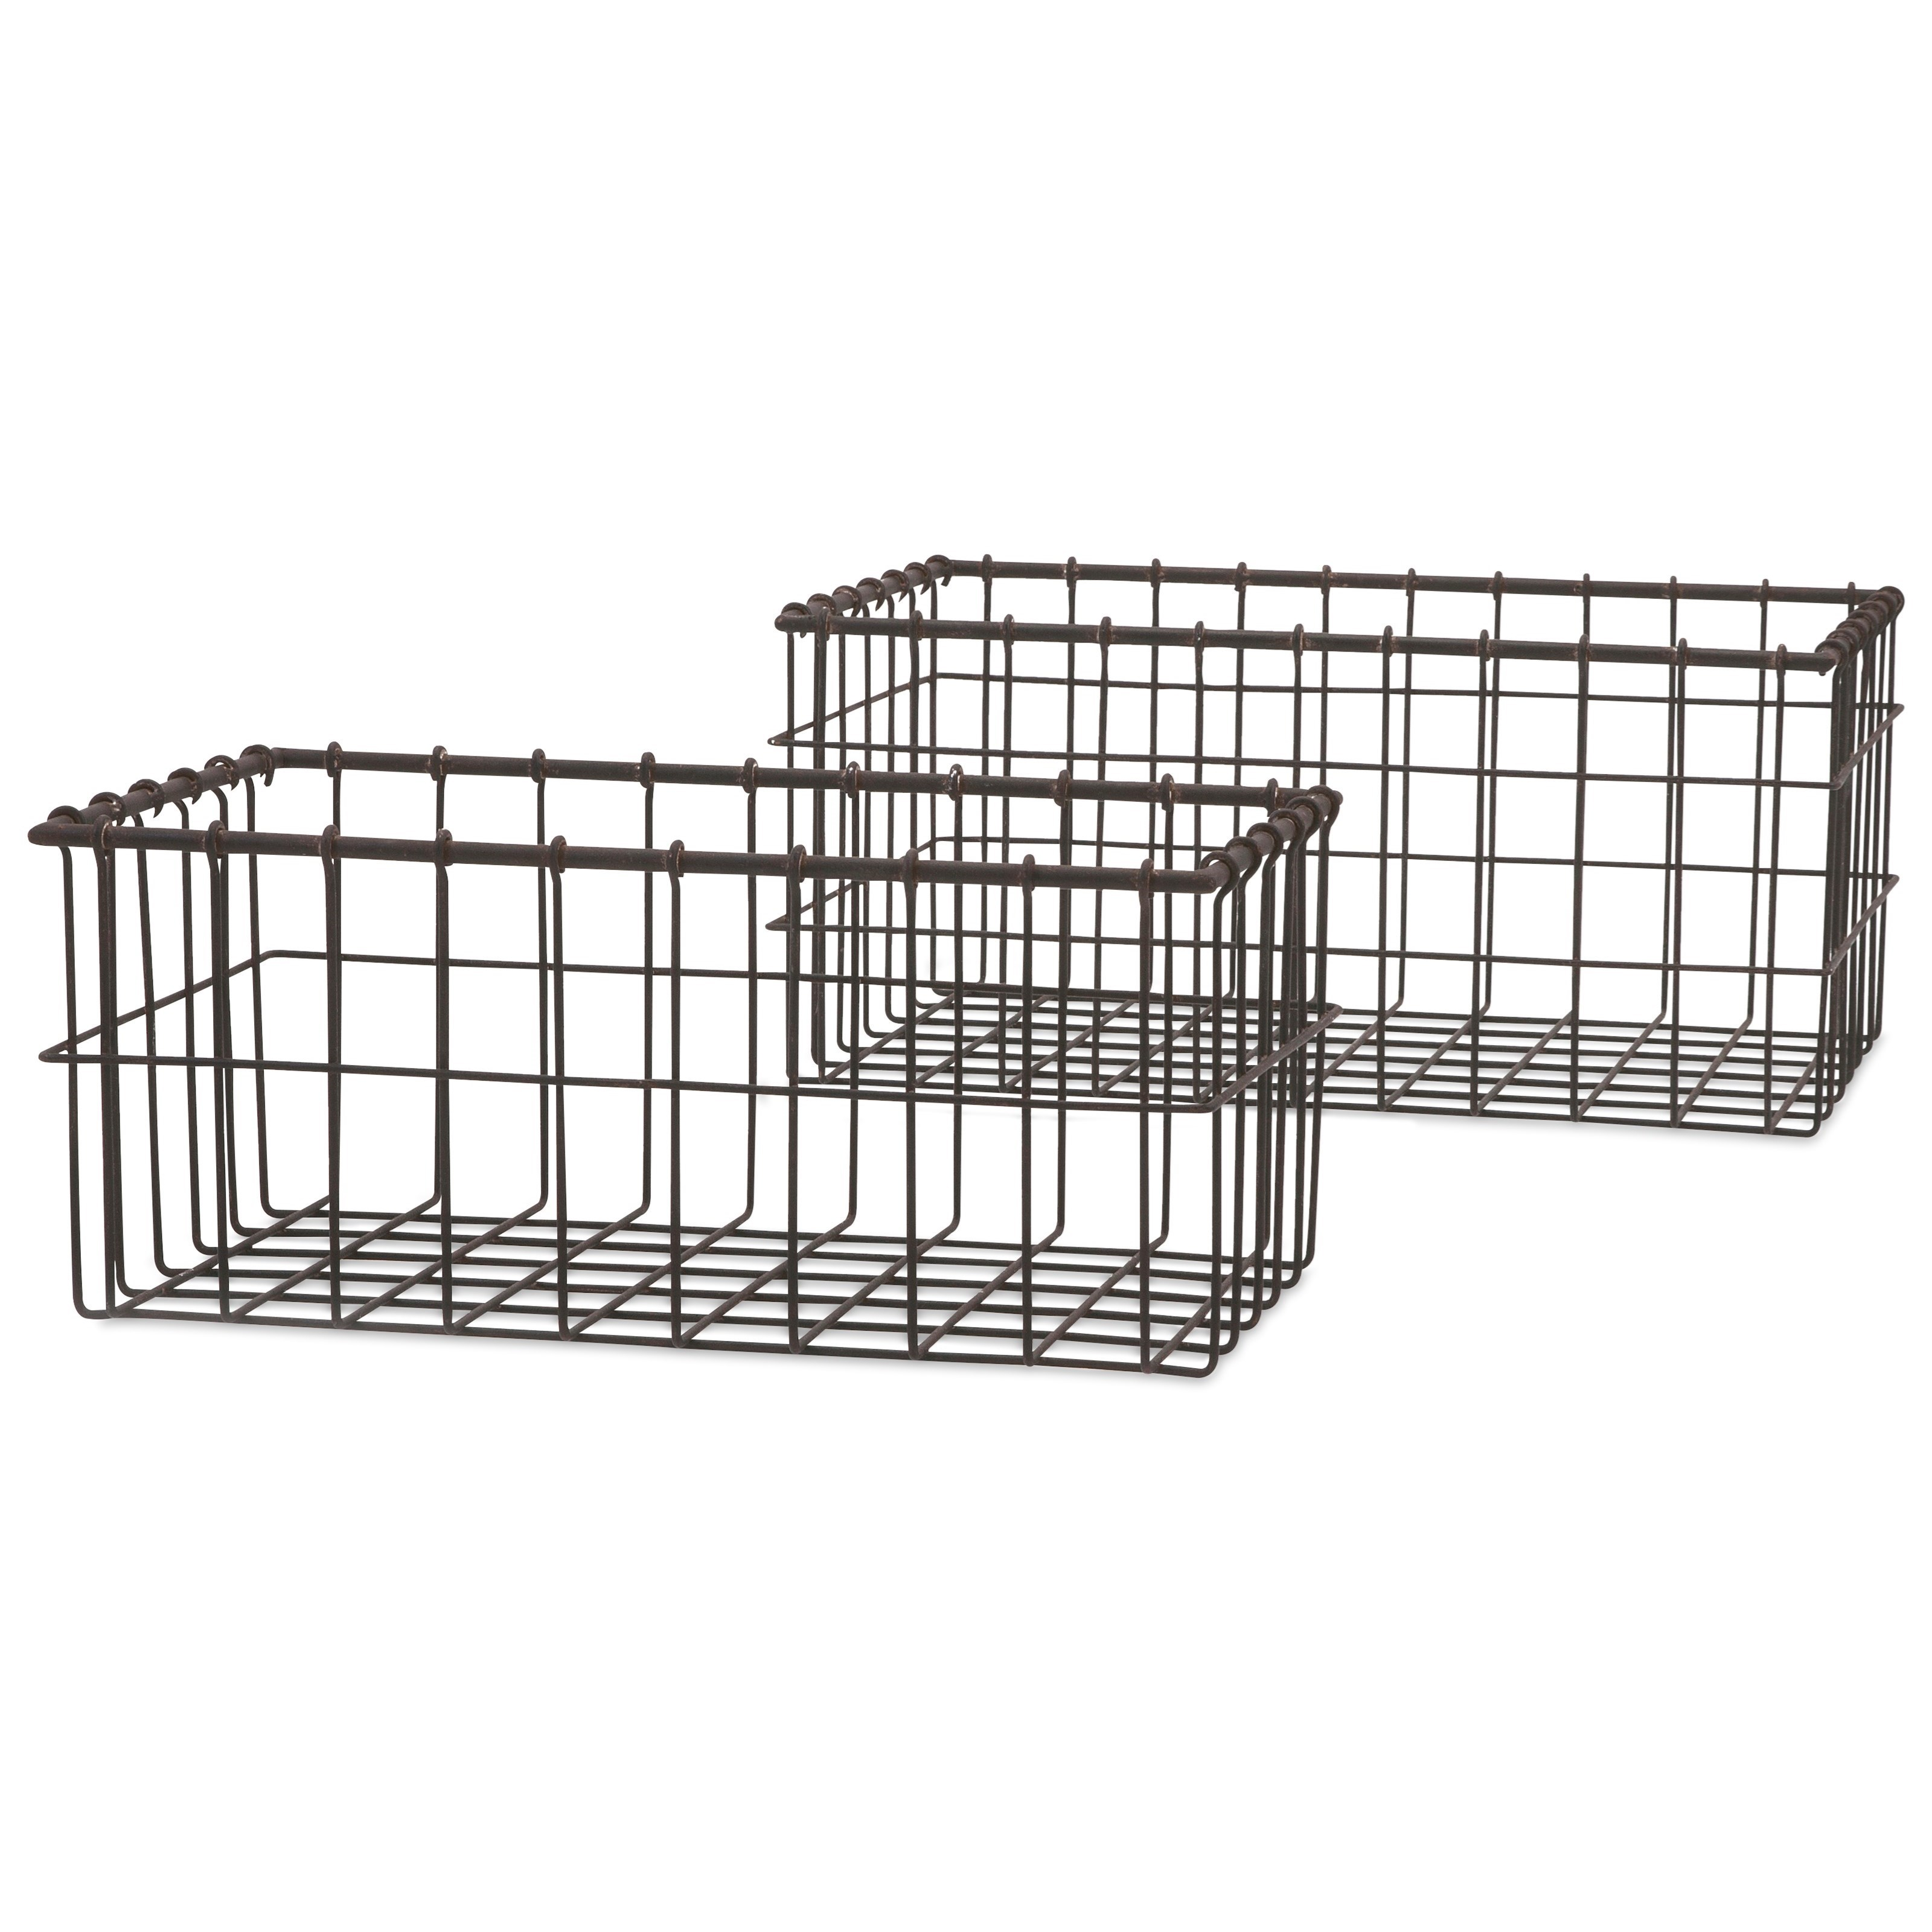 Baskets Hoyle Wire Baskets - Set of 2 by IMAX Worldwide Home at Alison Craig Home Furnishings